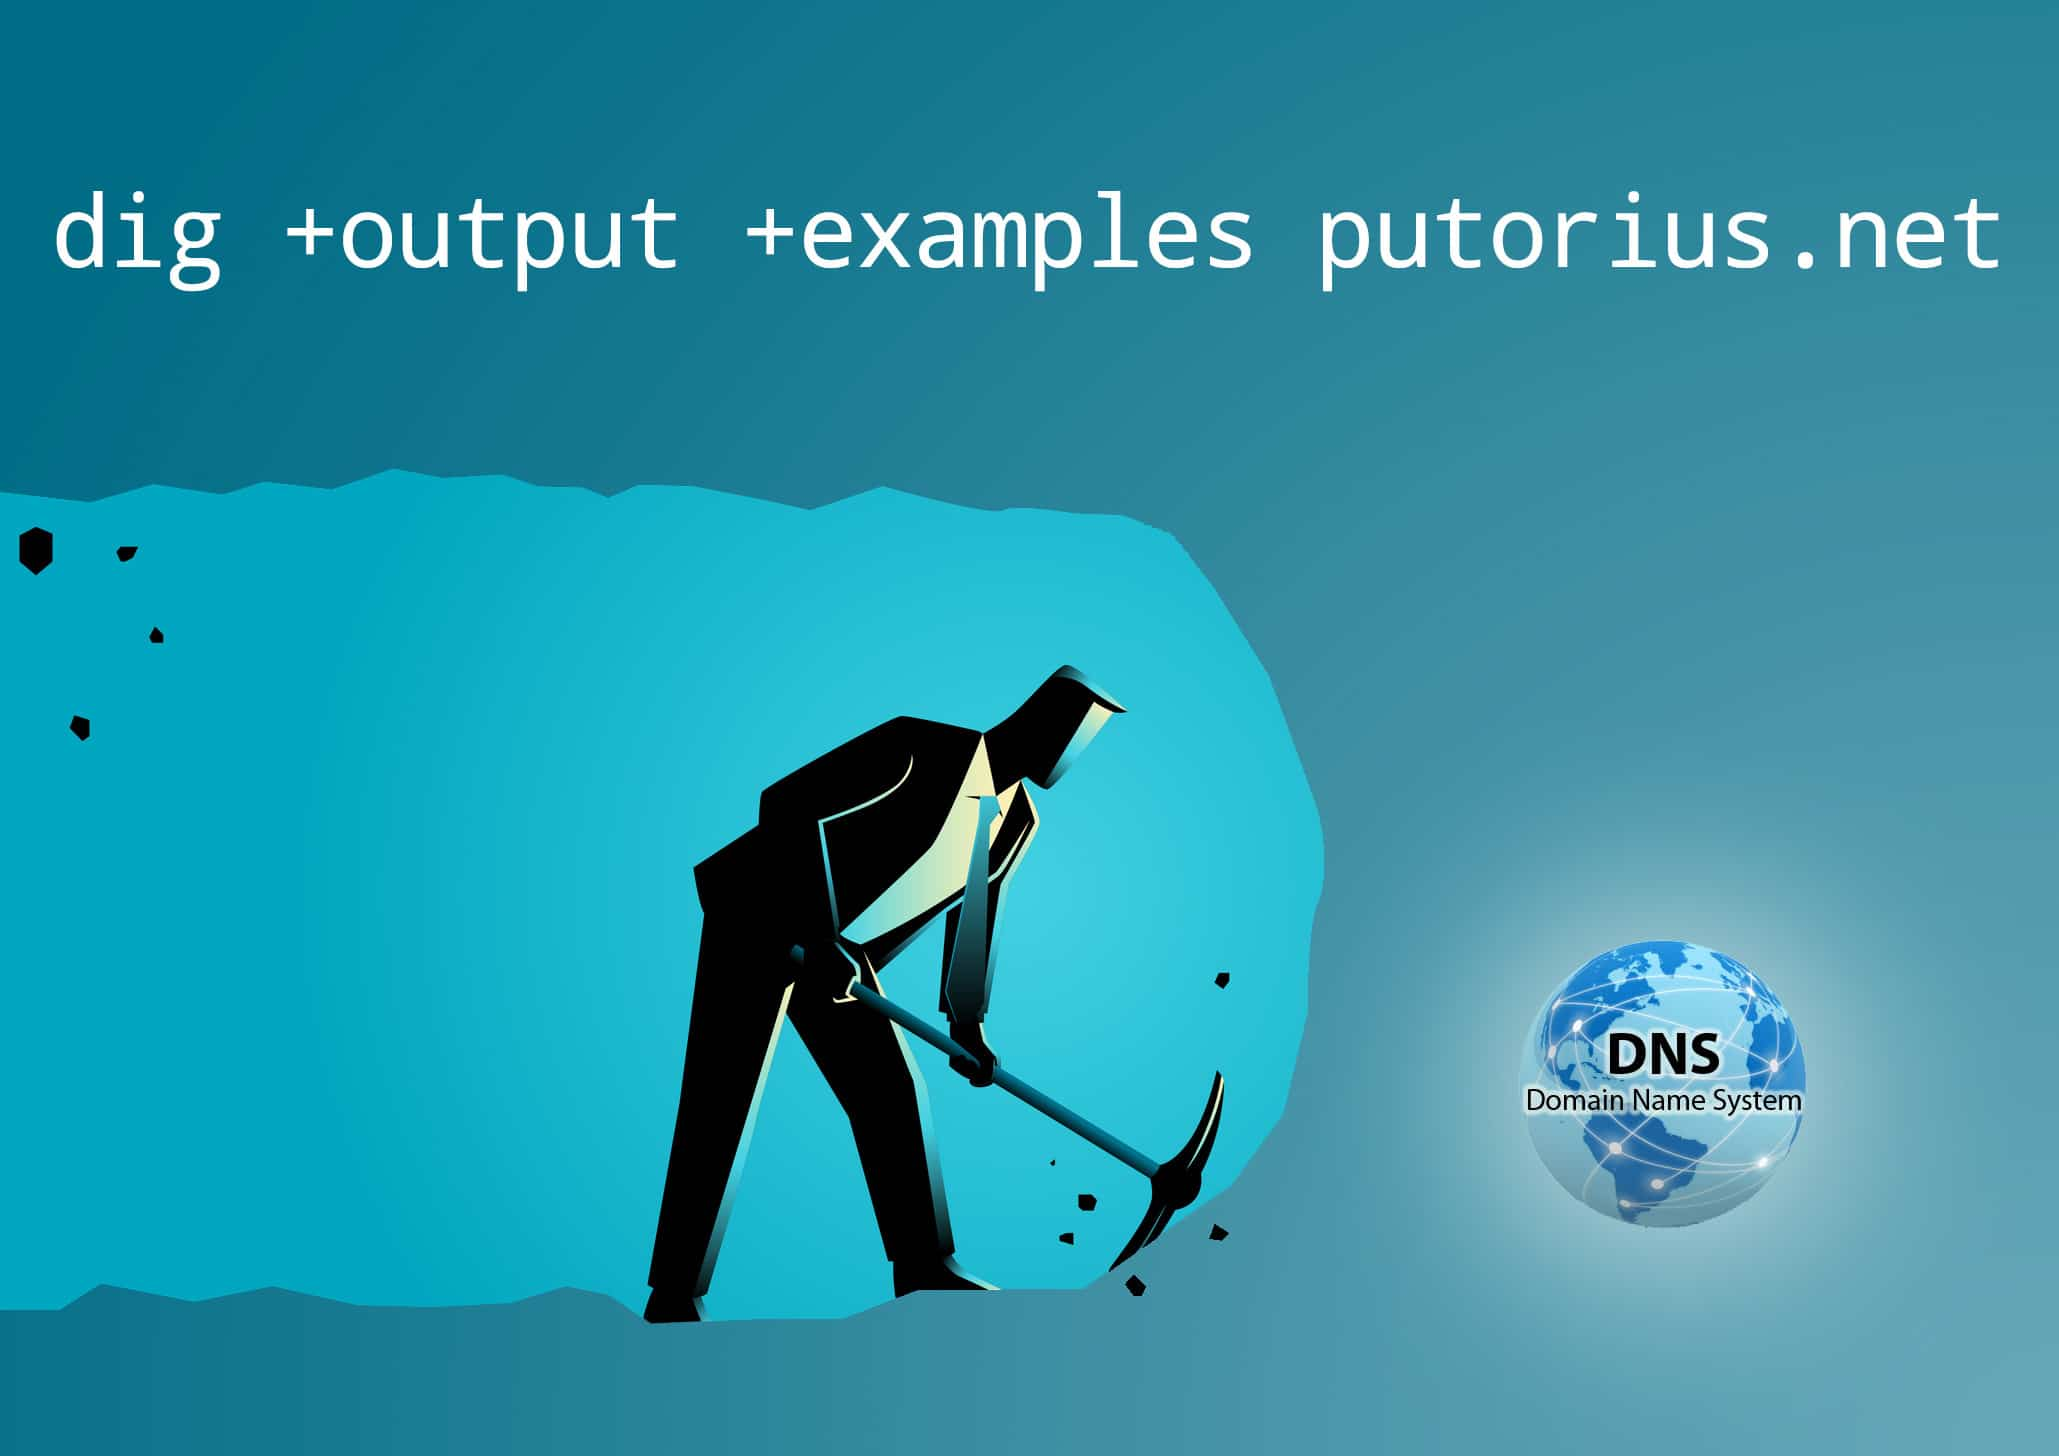 Dig - DNS Queries from the Linux Command Line - Putorius